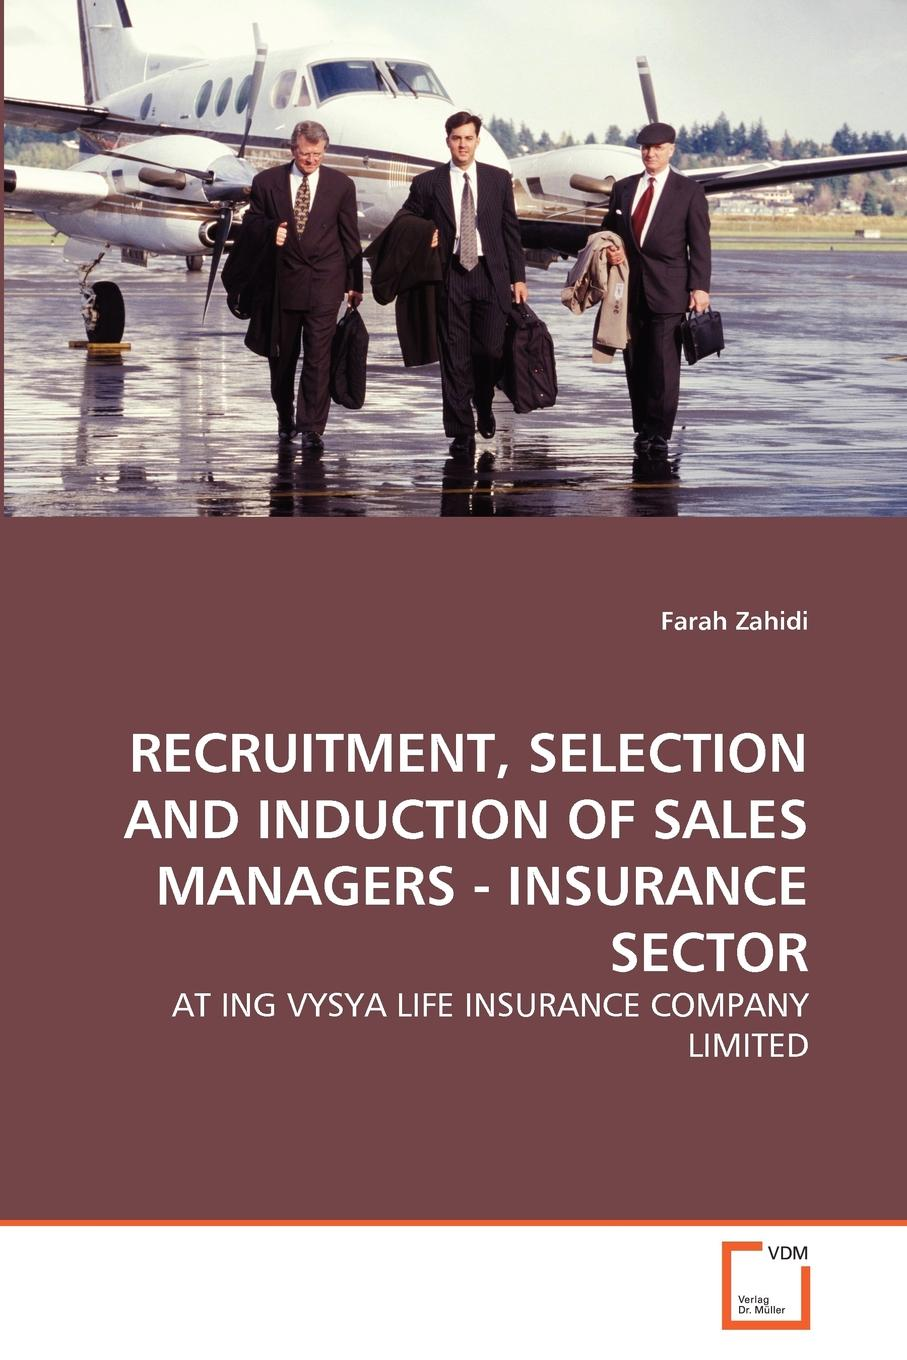 Farah Zahidi RECRUITMENT, SELECTION AND INDUCTION OF SALES MANAGERS - INSURANCE SECTOR journey recruitment